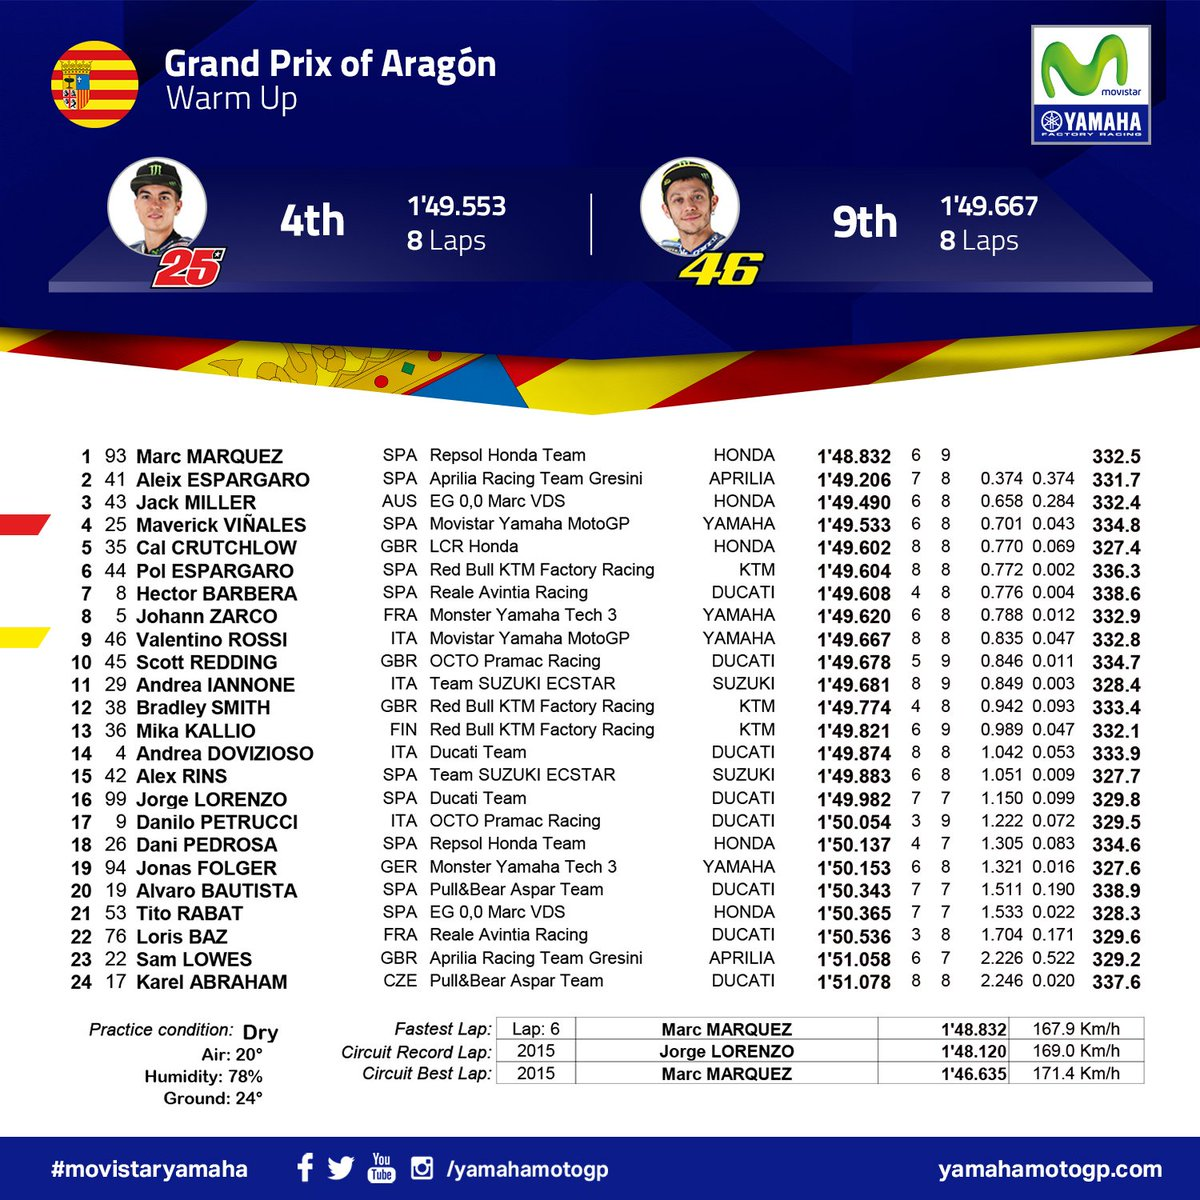 test Twitter Media - Warm Up Results: Solid start to the race day. @maverickmack25 4th, @ValeYellow46 9th. #MovistarYamaha #MotoGP #AragonGP https://t.co/x1g8vTNZbW